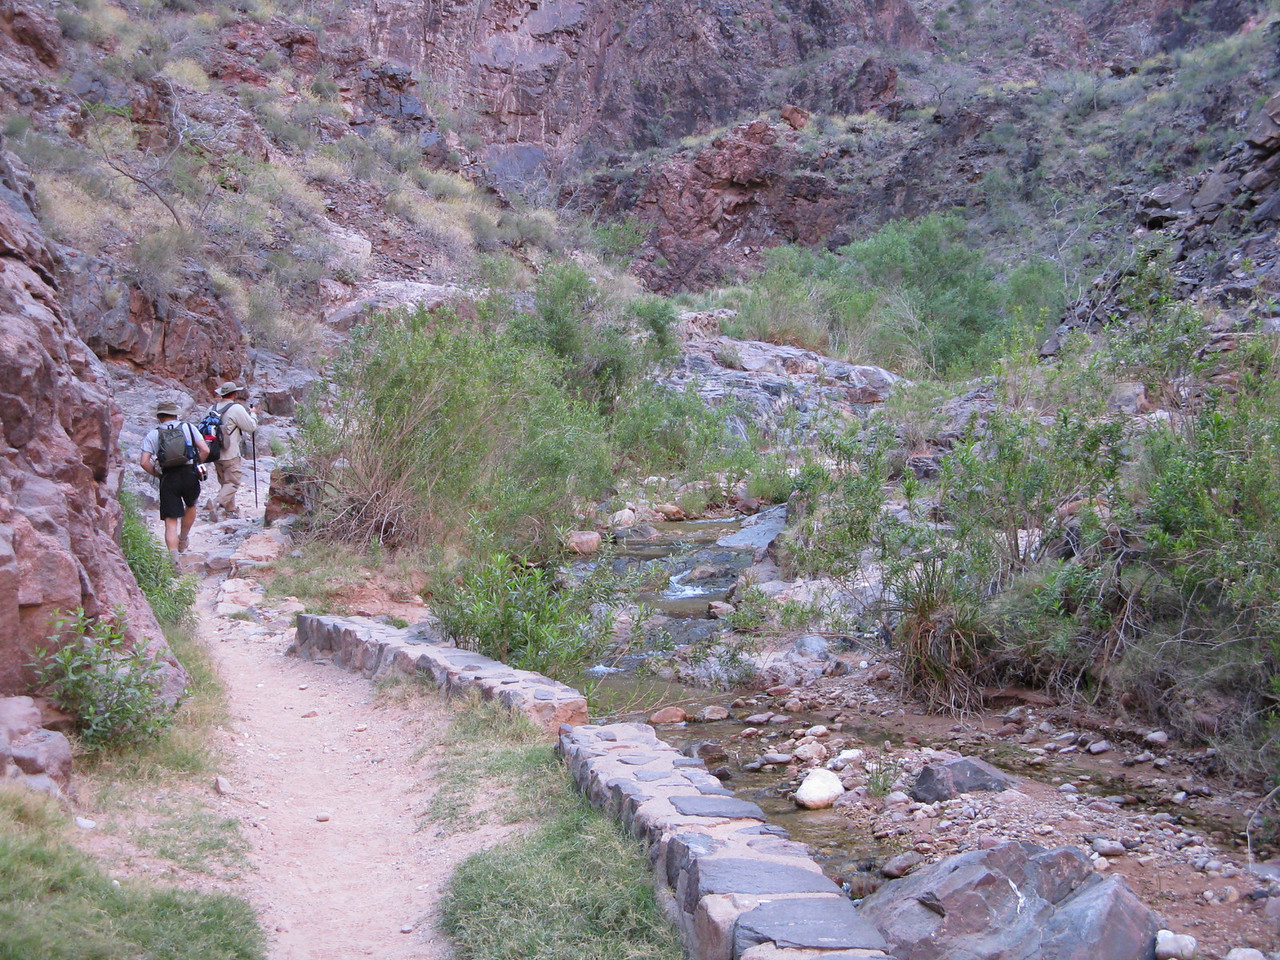 The trail follows Pipe Creek up the bottom of this side canyon.